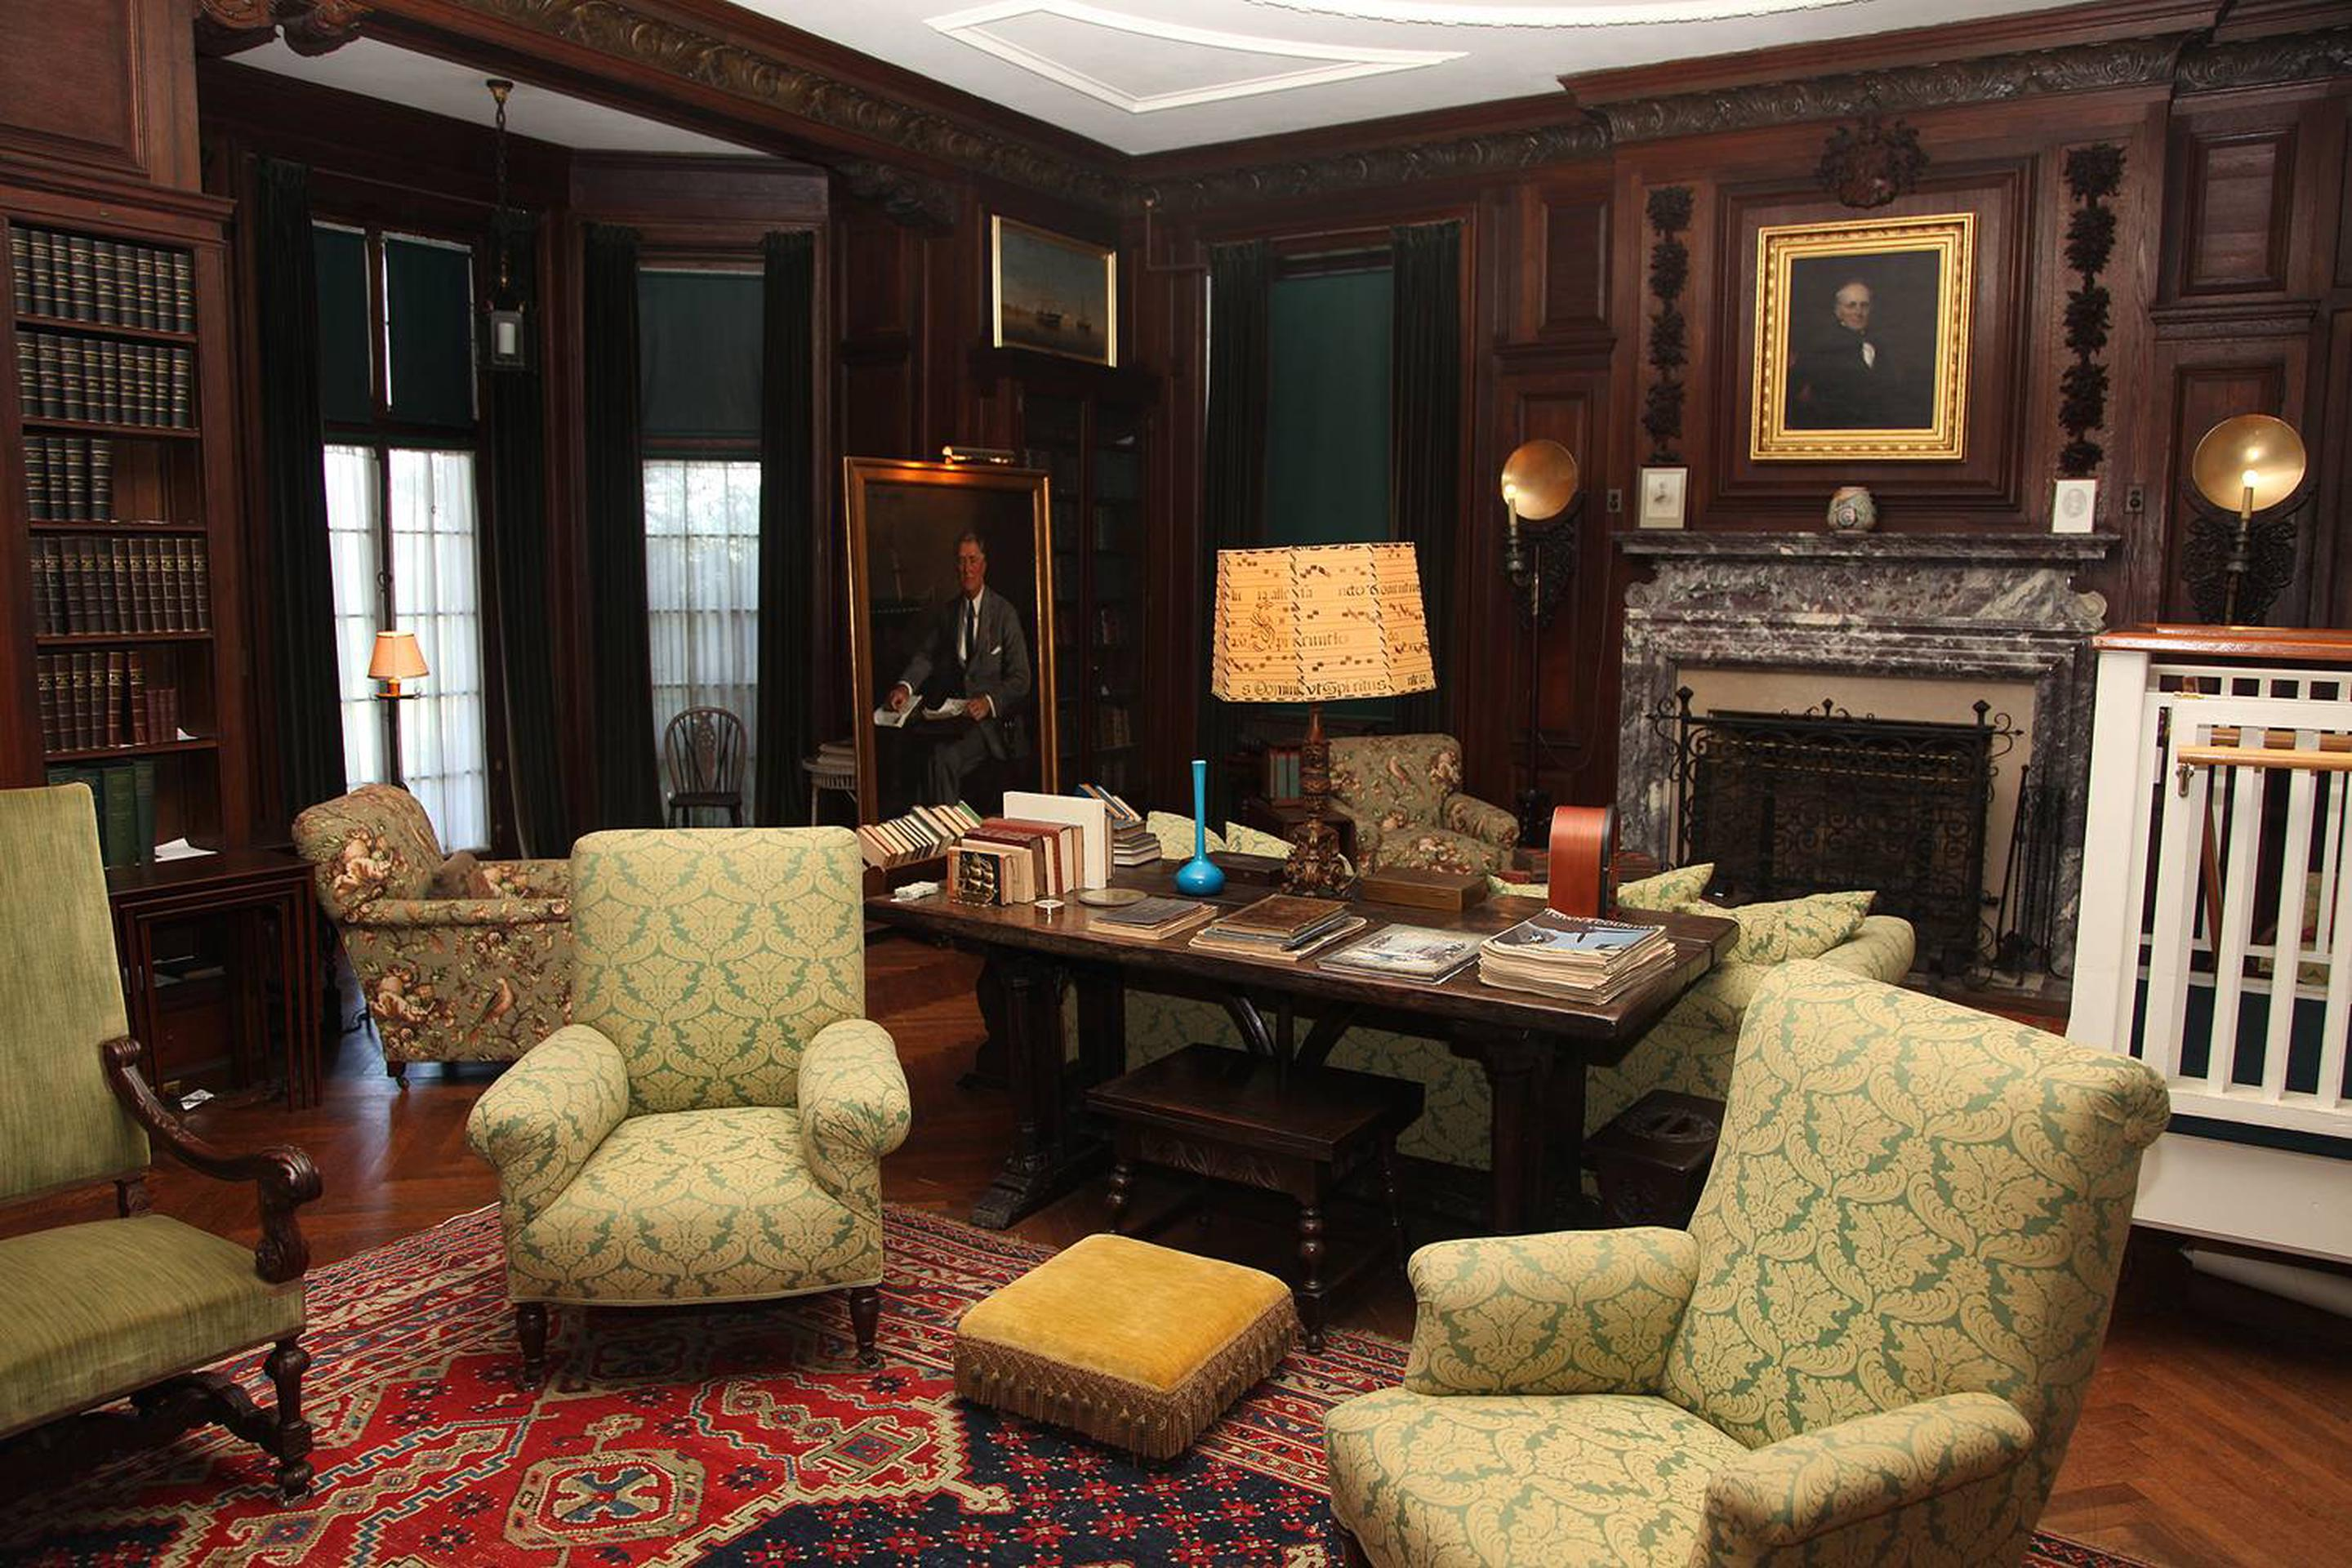 FDR's home library